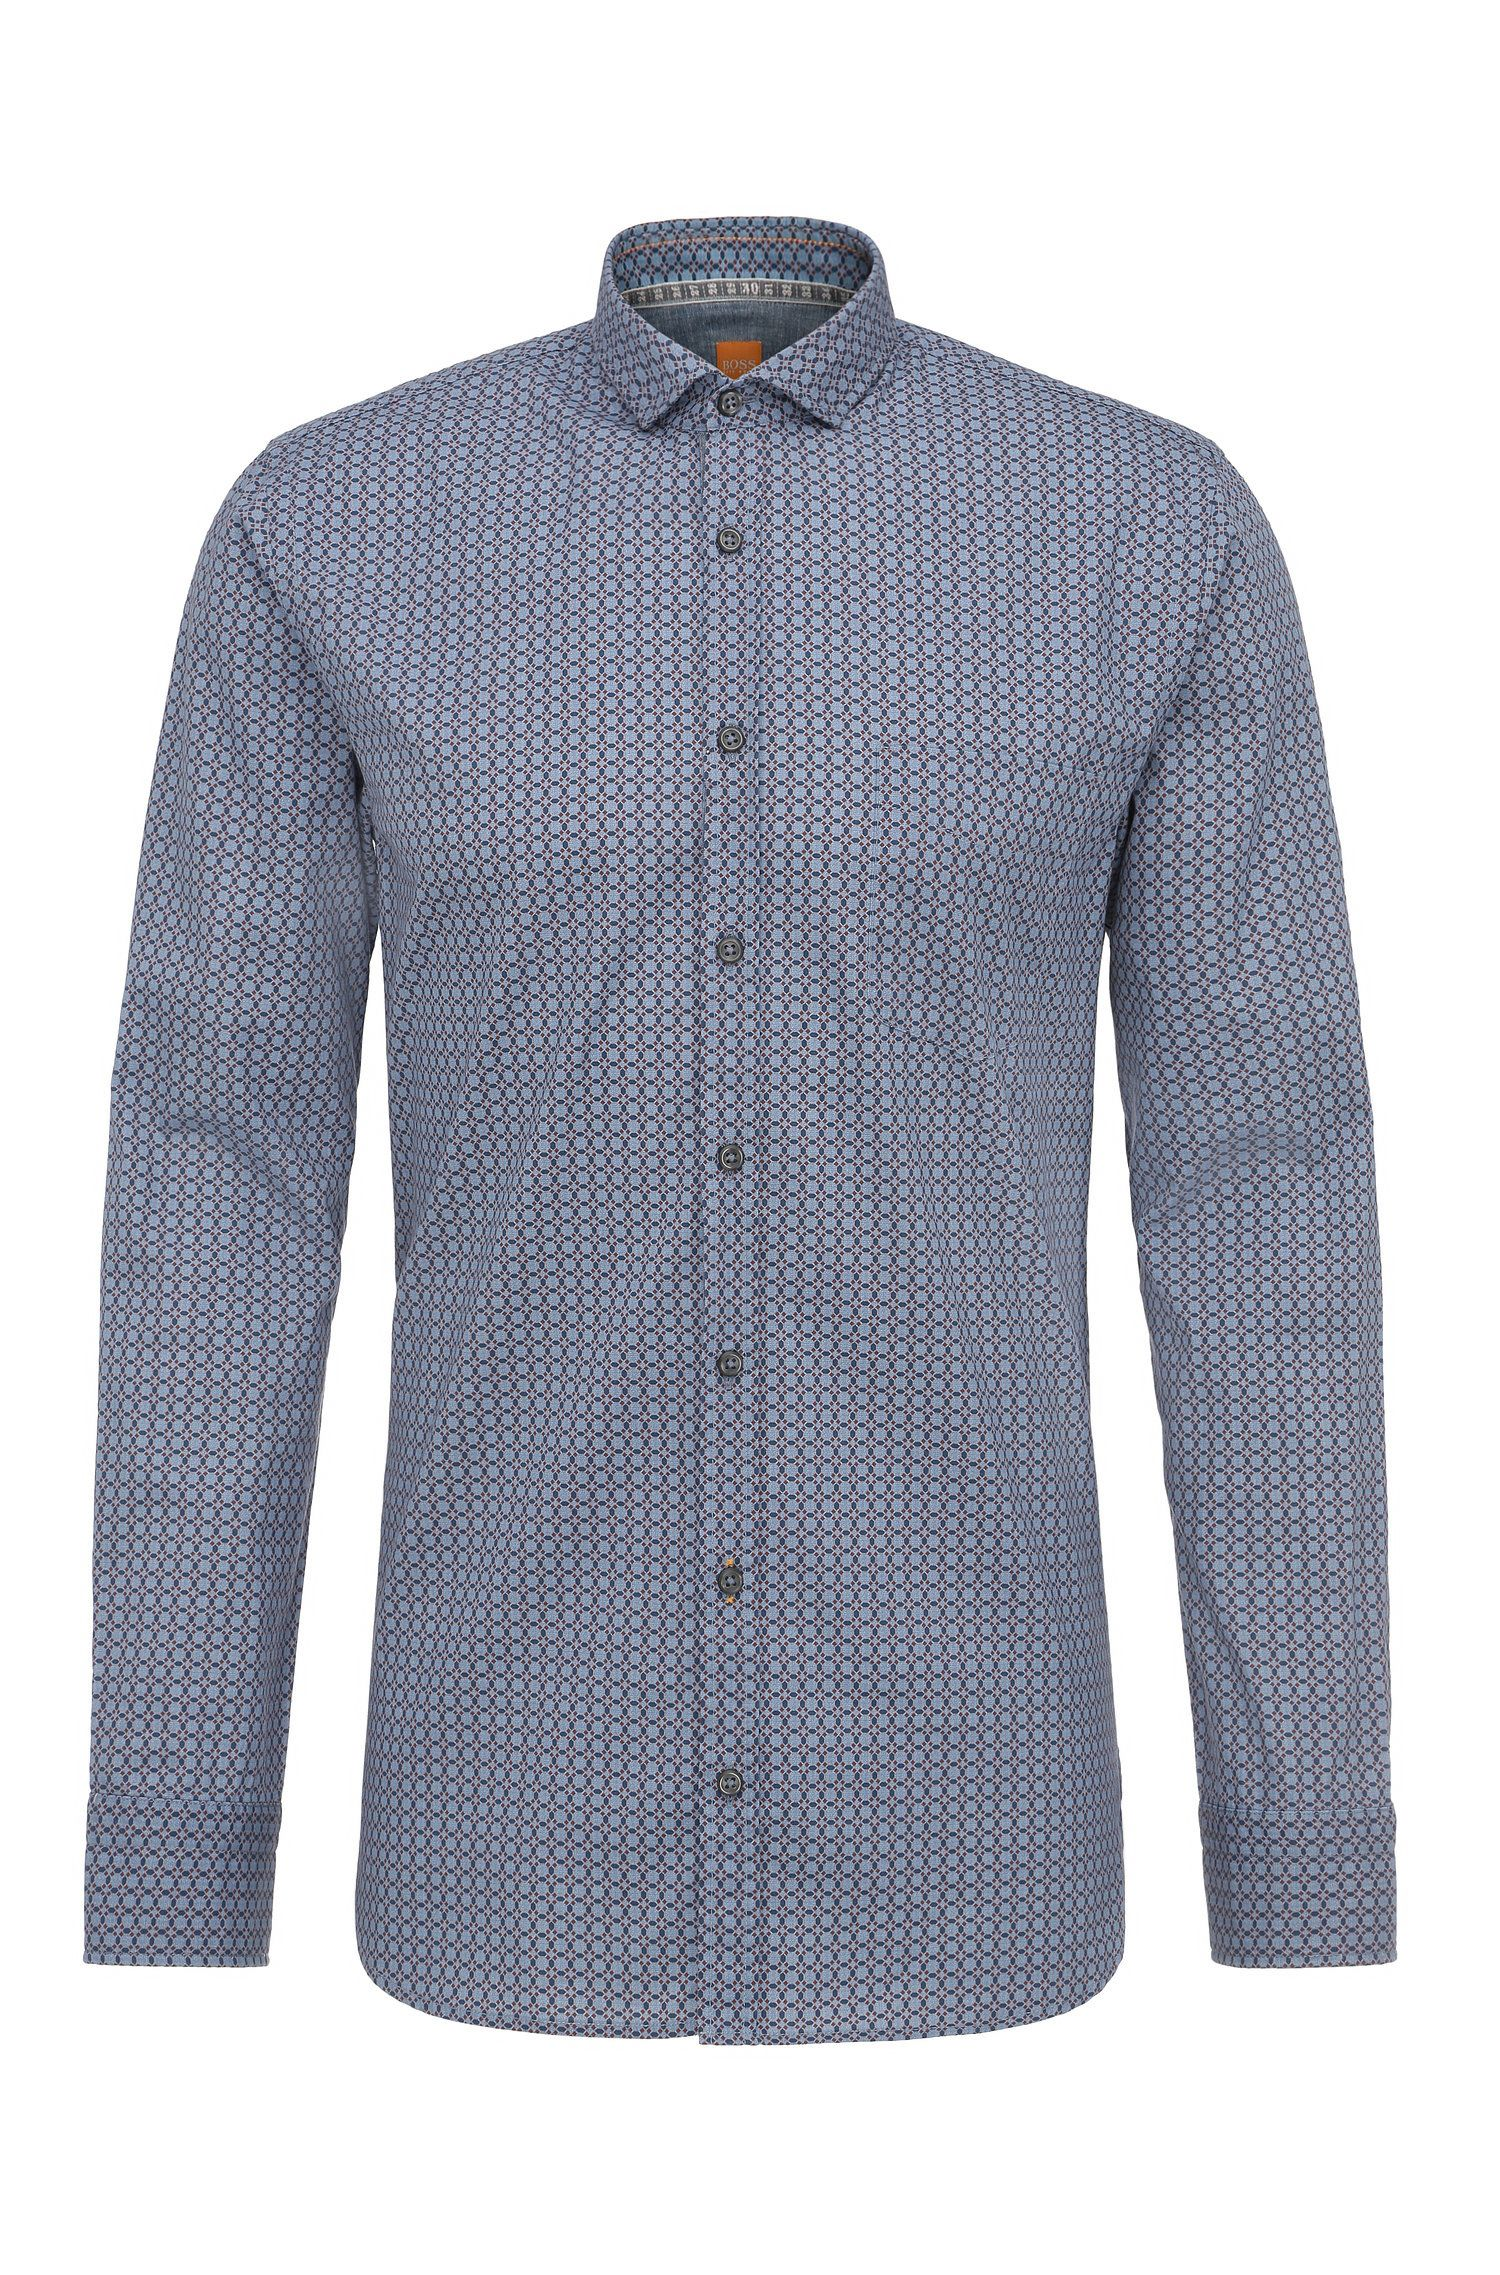 Patterned slim-fit shirt in cotton: 'Cattitude'